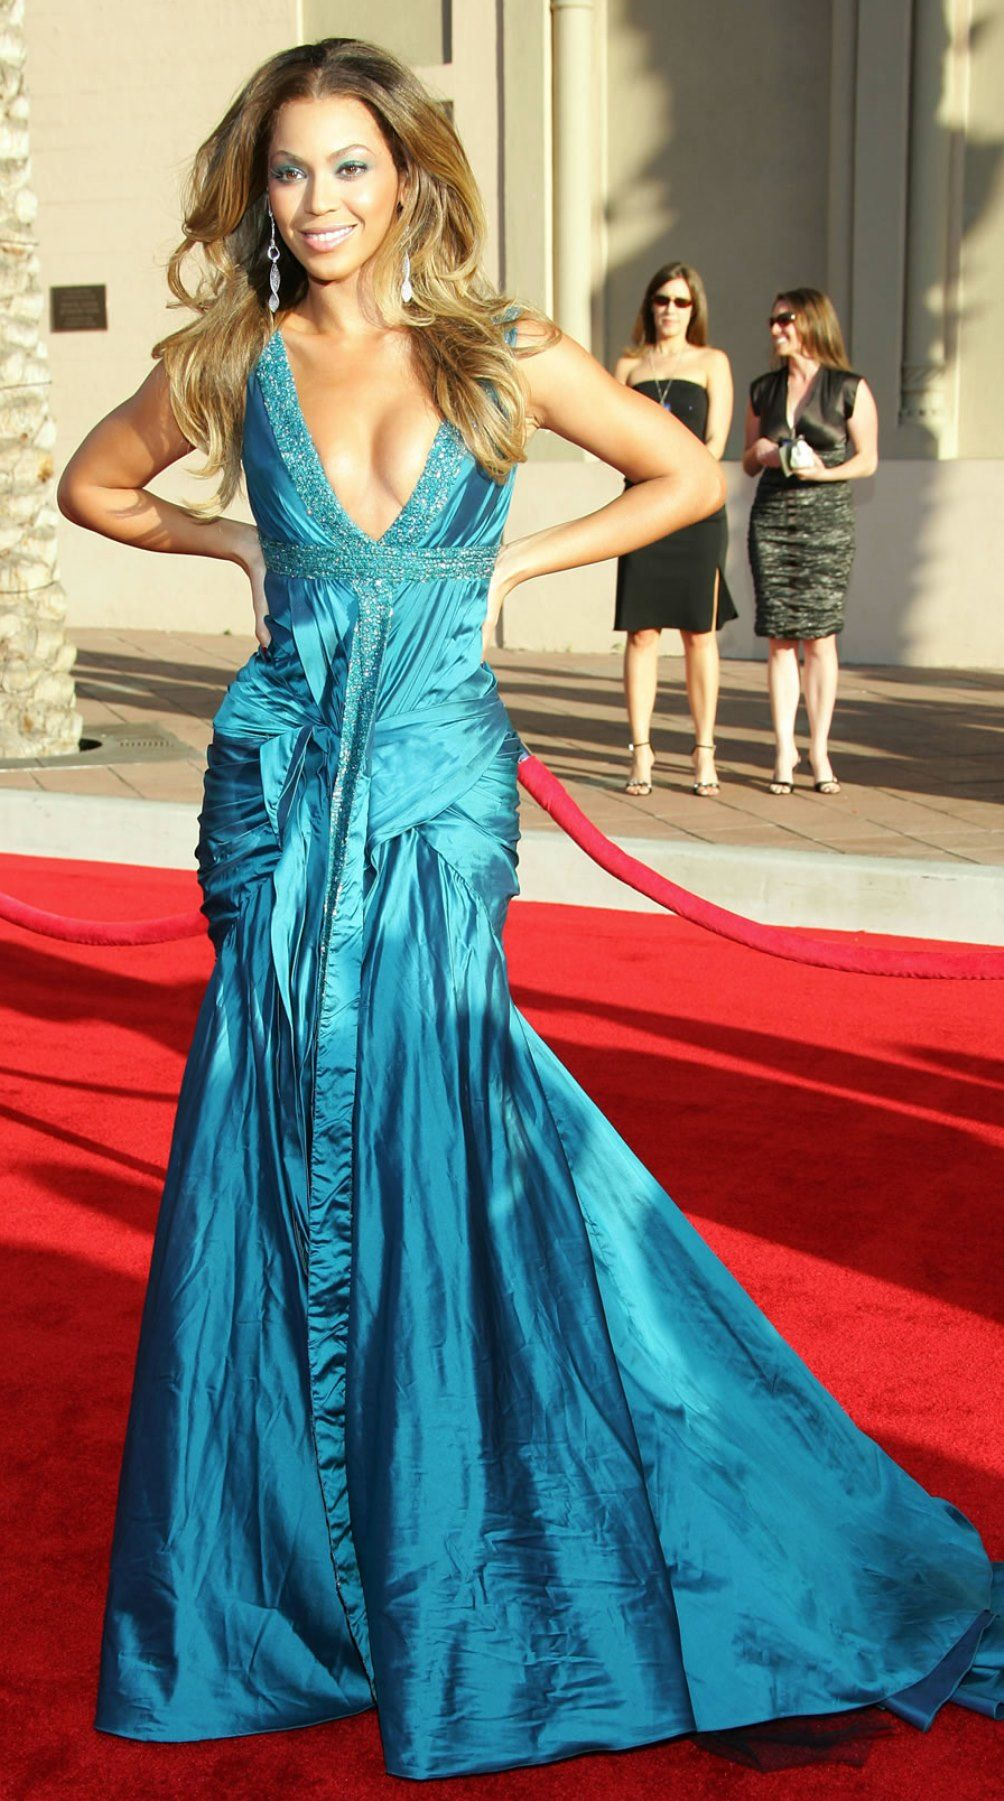 Pin by Fashion Dolling on Beyoncé | Pinterest | Dress blues